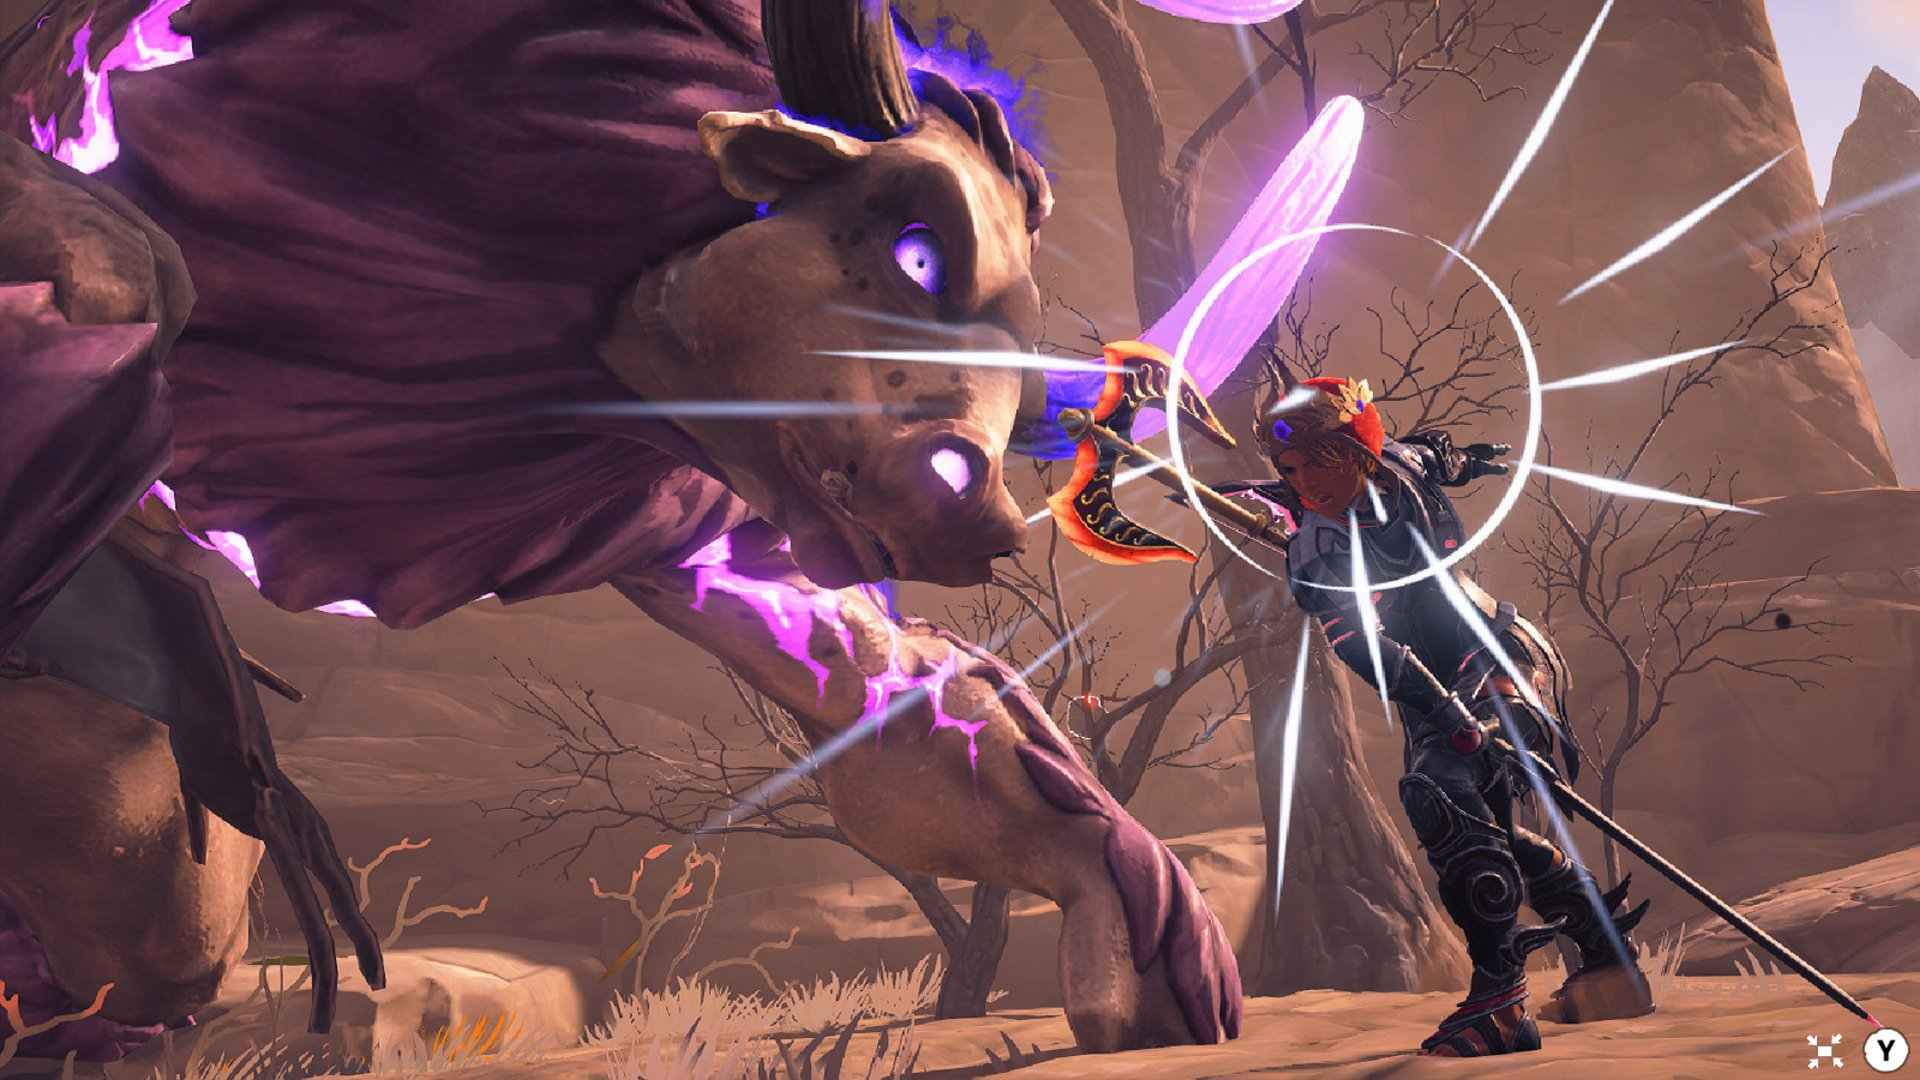 A screenshot from Fenyx, in which you're taking on a giant Minotaur.